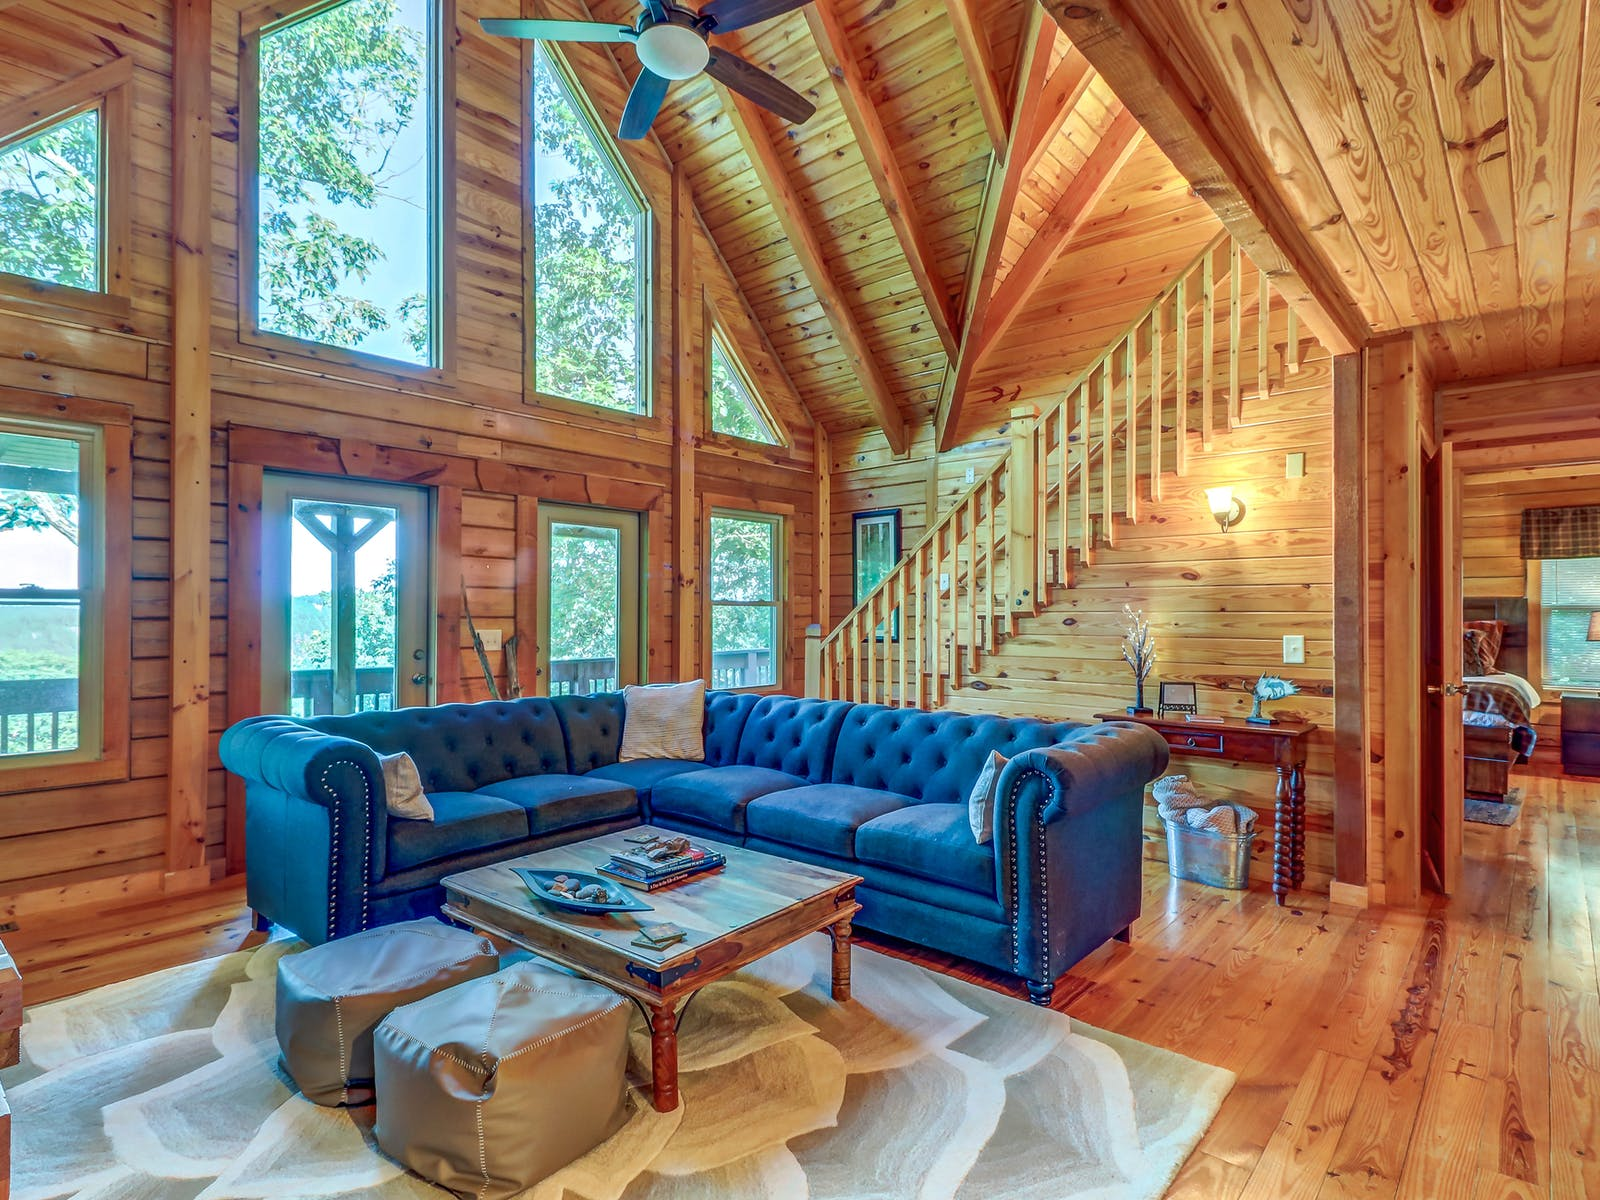 vacation cabin in ranger, ga with soft blue chesterfield couch